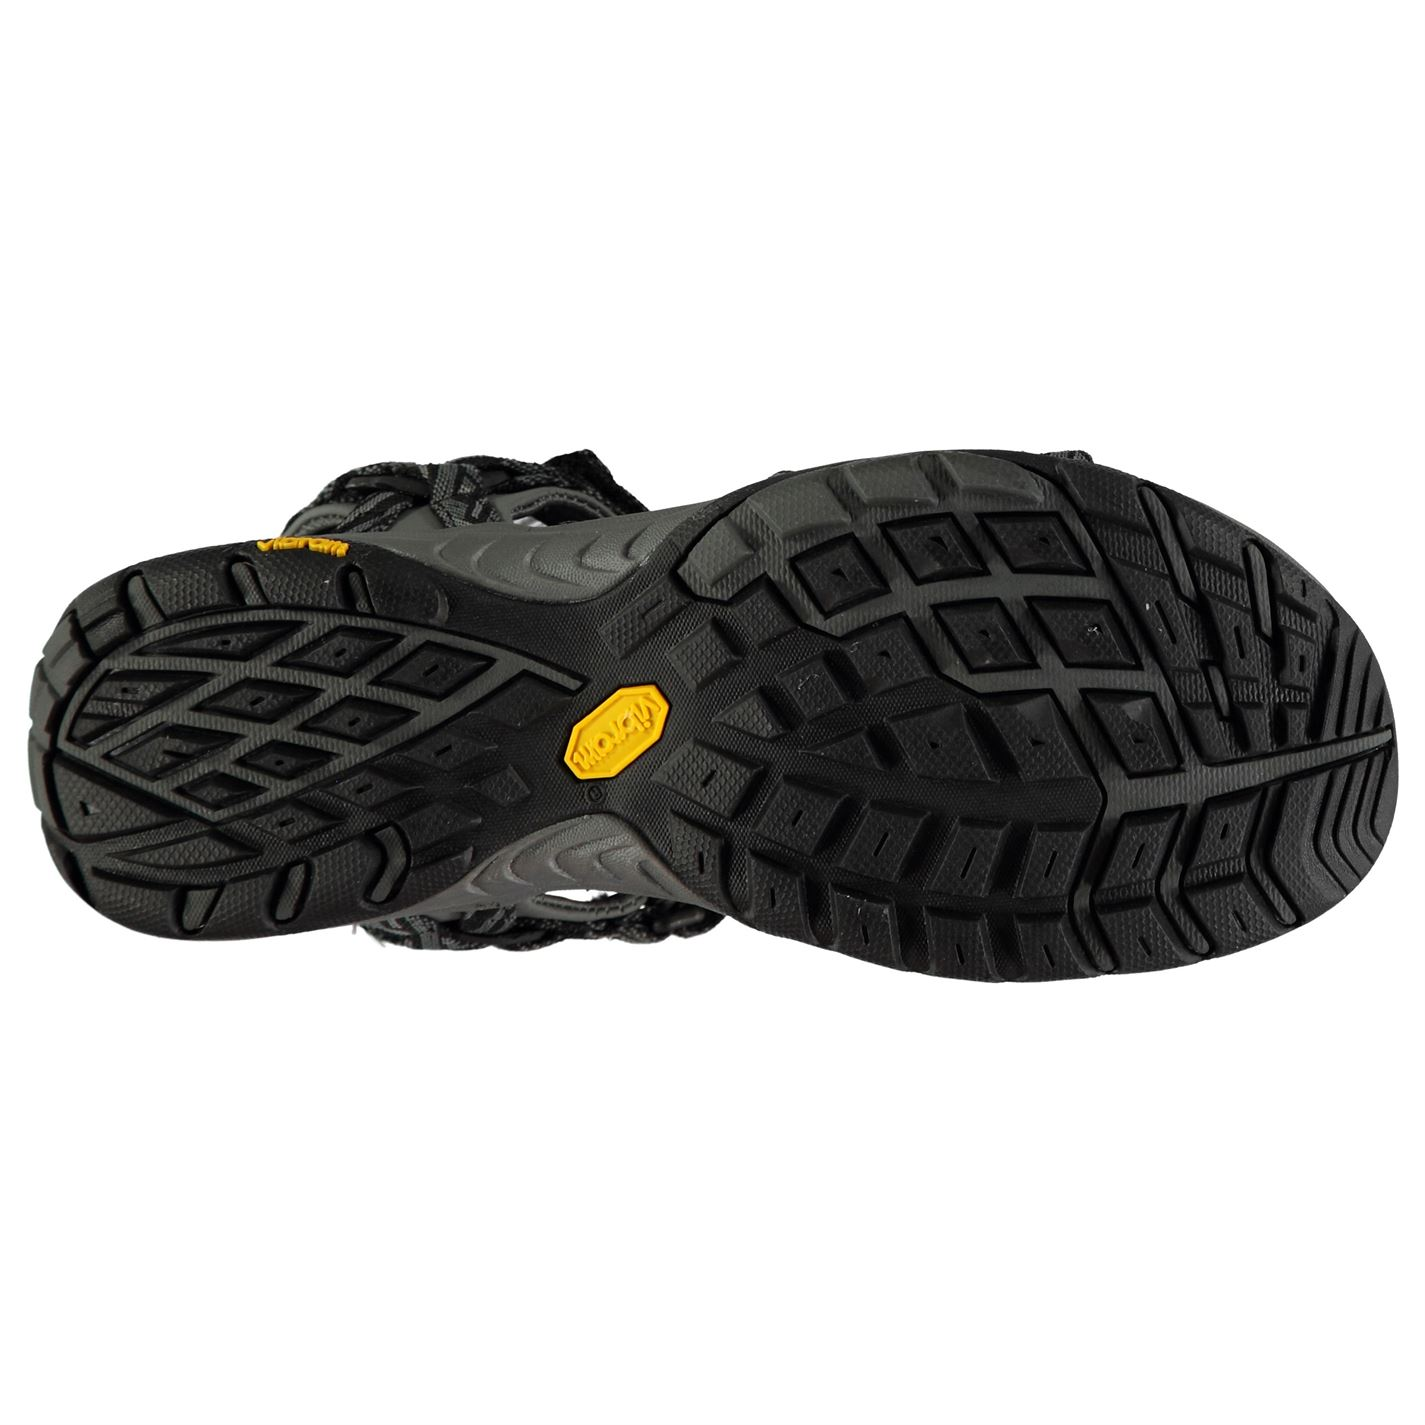 Black Sandals Walking Loop Leggero Vibram Martini Karrimor Womens And Hook ZTxFn1Wwzq